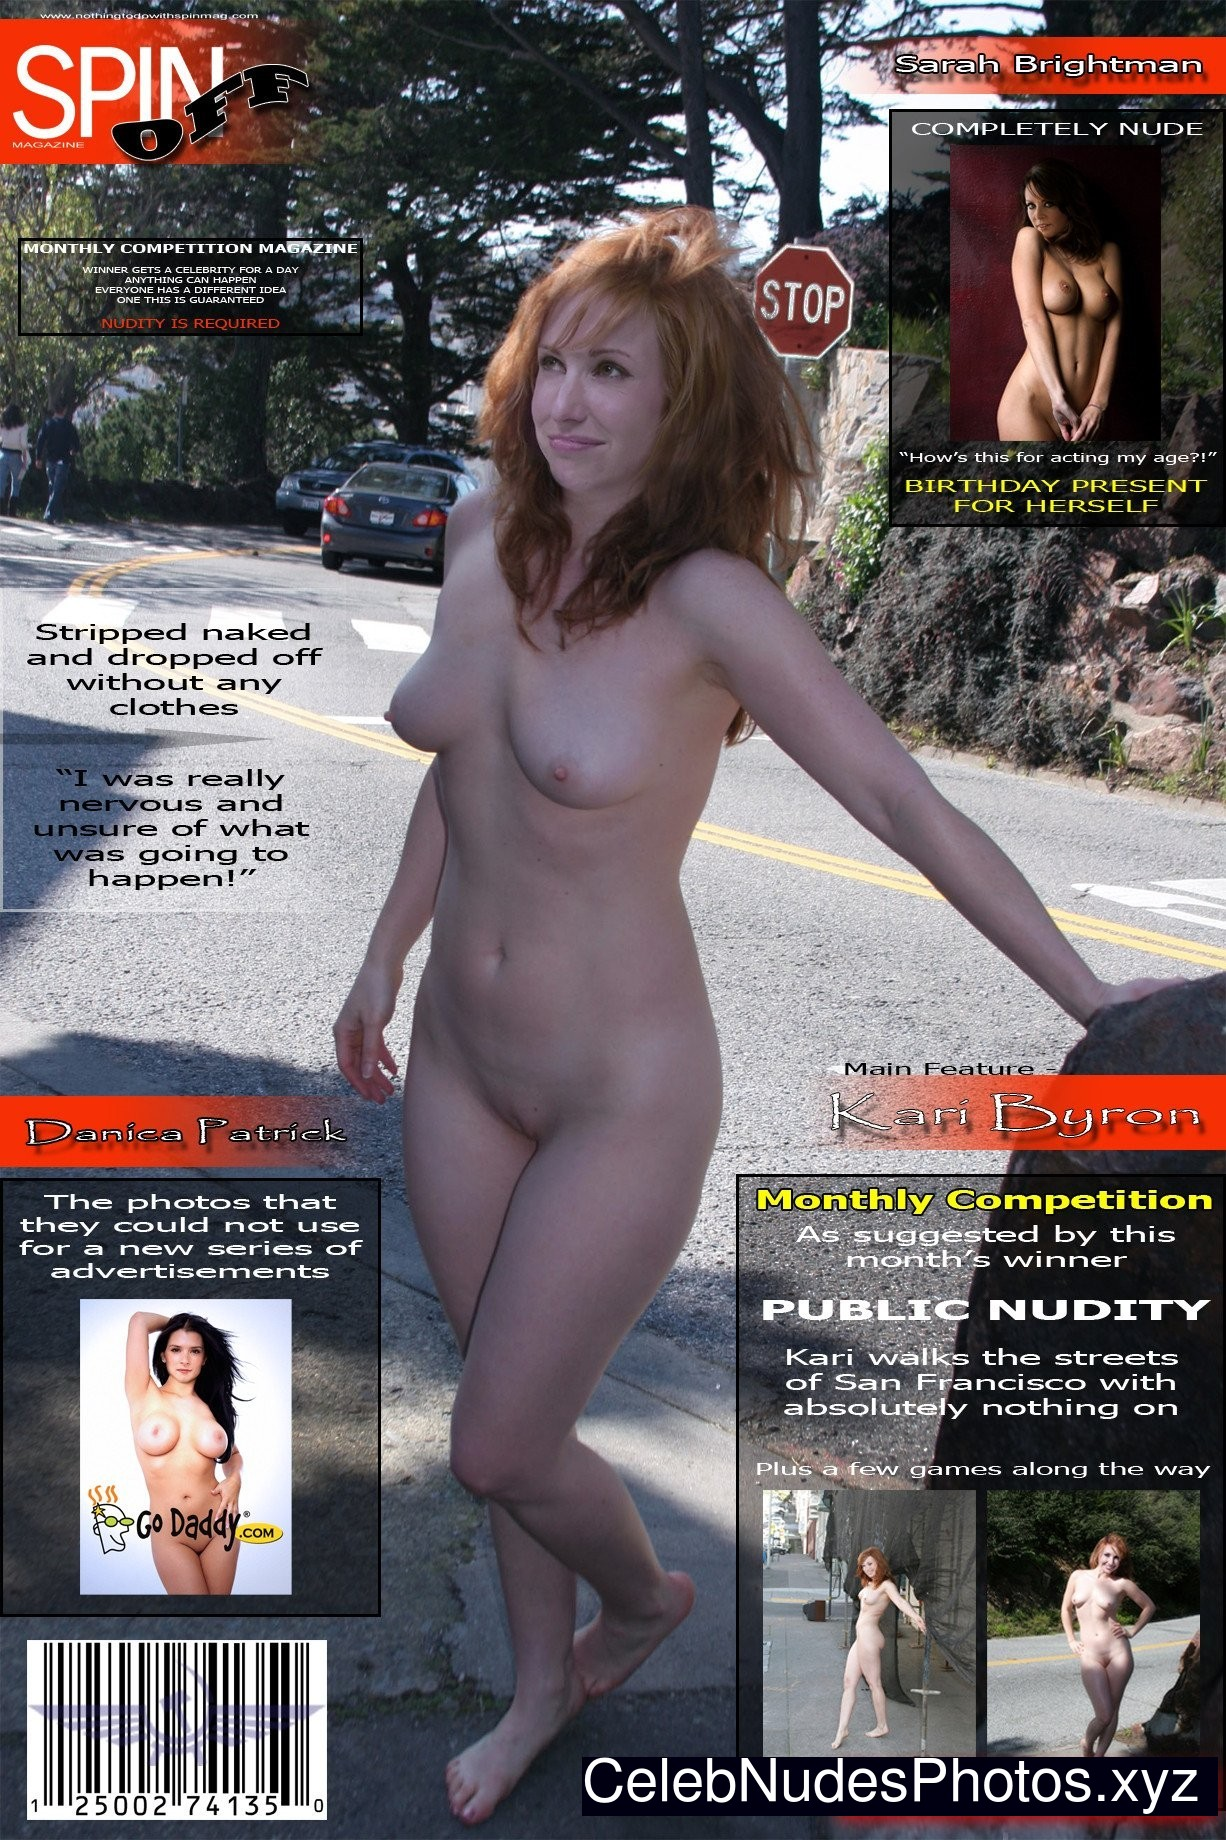 Naked photos of carrie byron 4